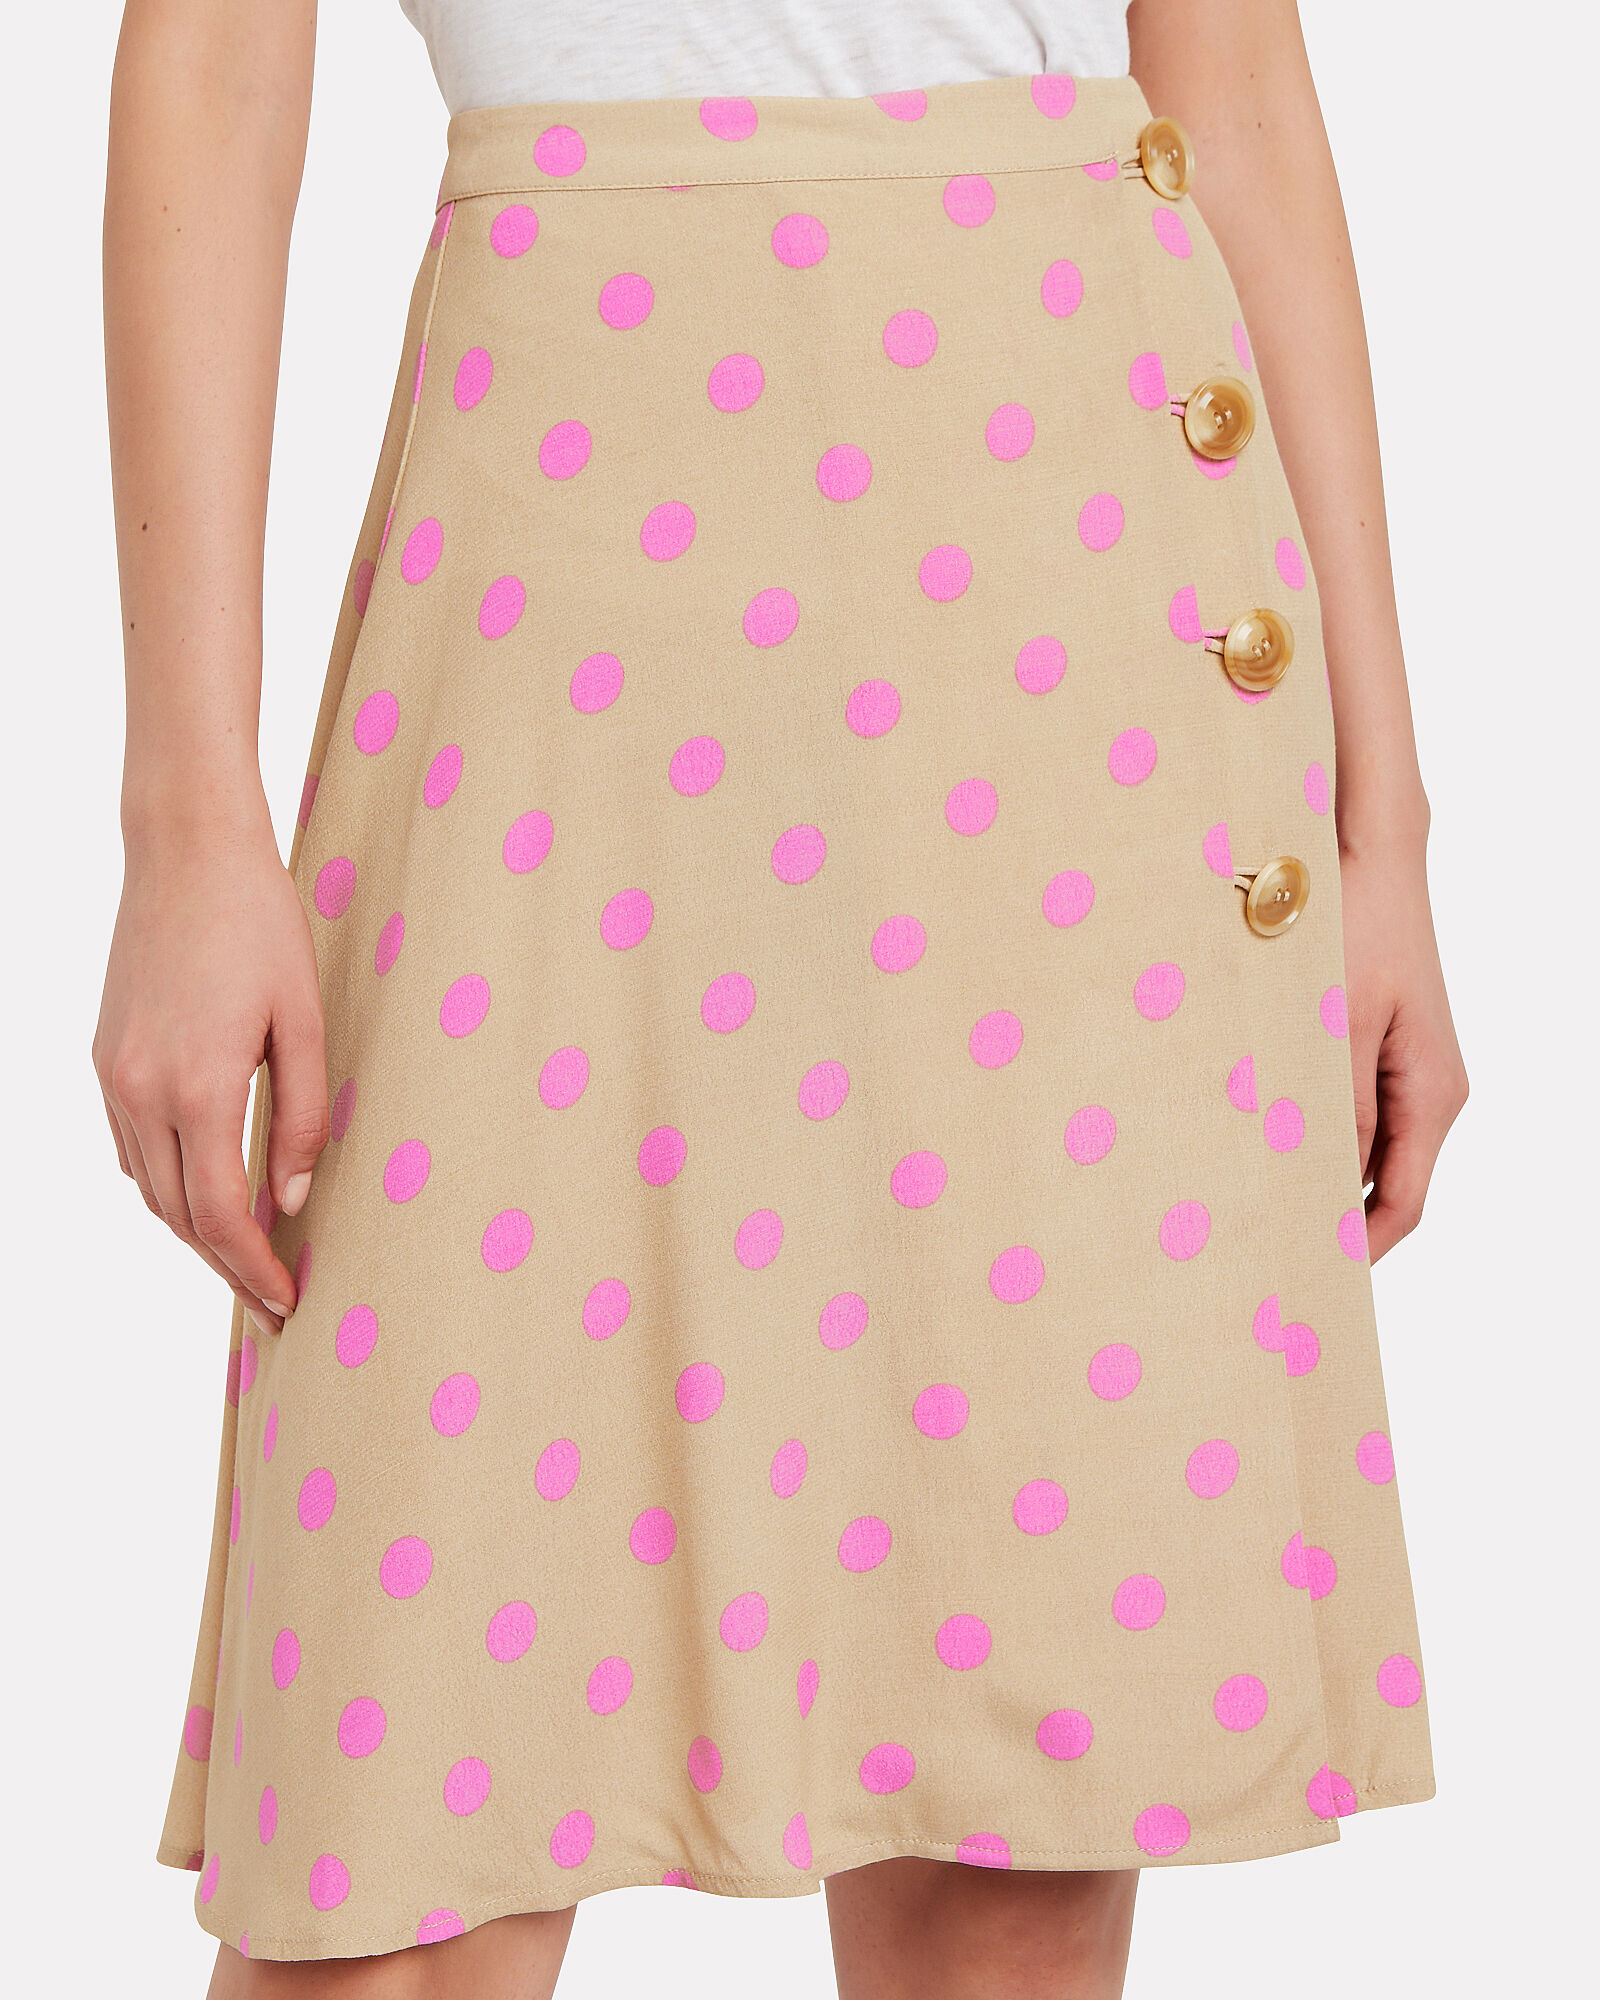 Ono Polka Dot Wrap Skirt, MULTI, hi-res